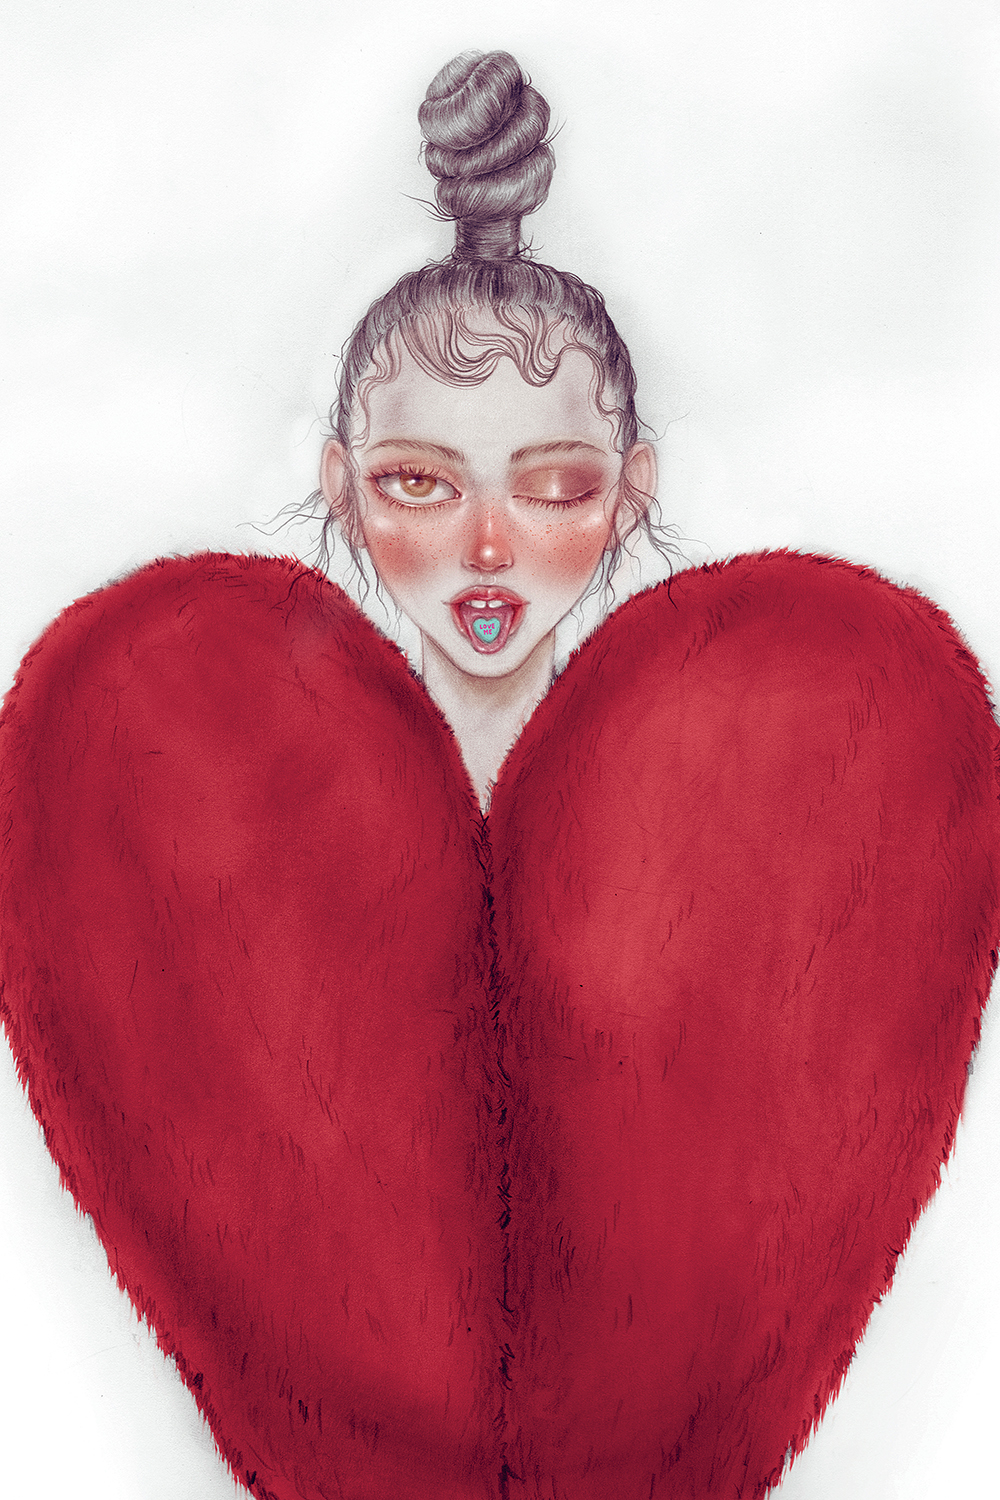 Illustration of female winking with candy heart on tongue and wearing a heart-shaped fur